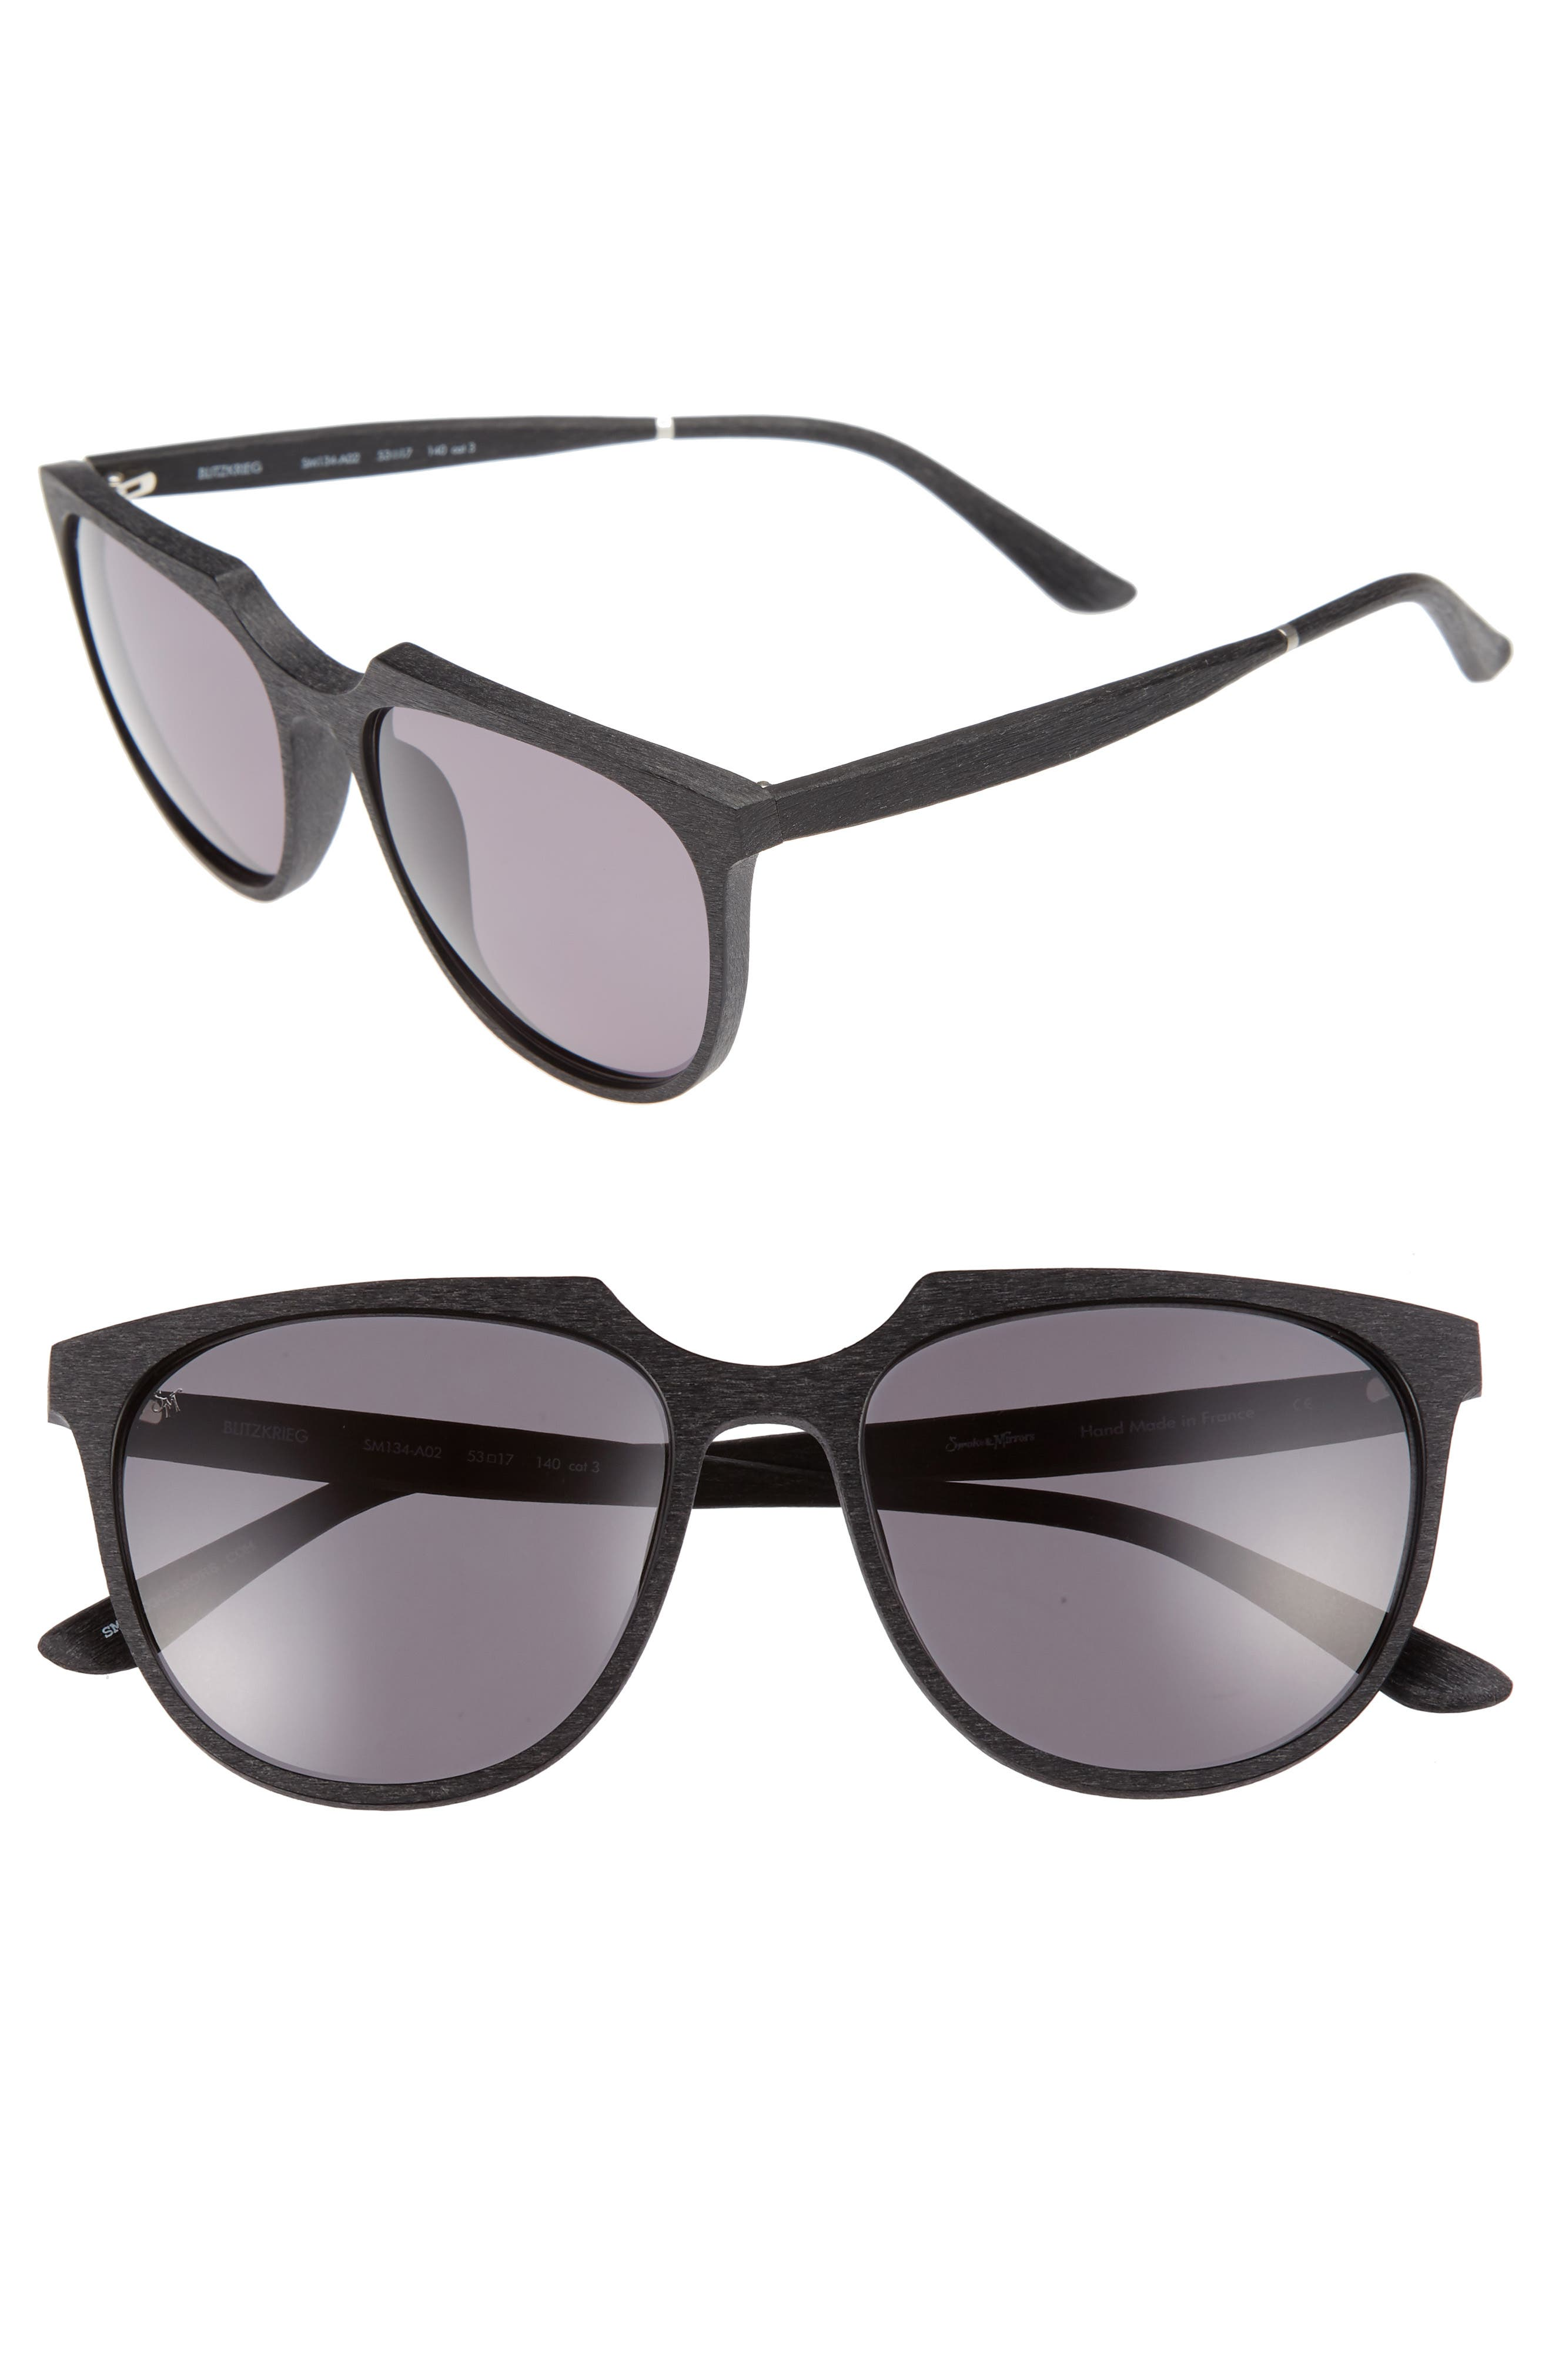 Blitzkrieg 53mm Sunglasses,                         Main,                         color, 001